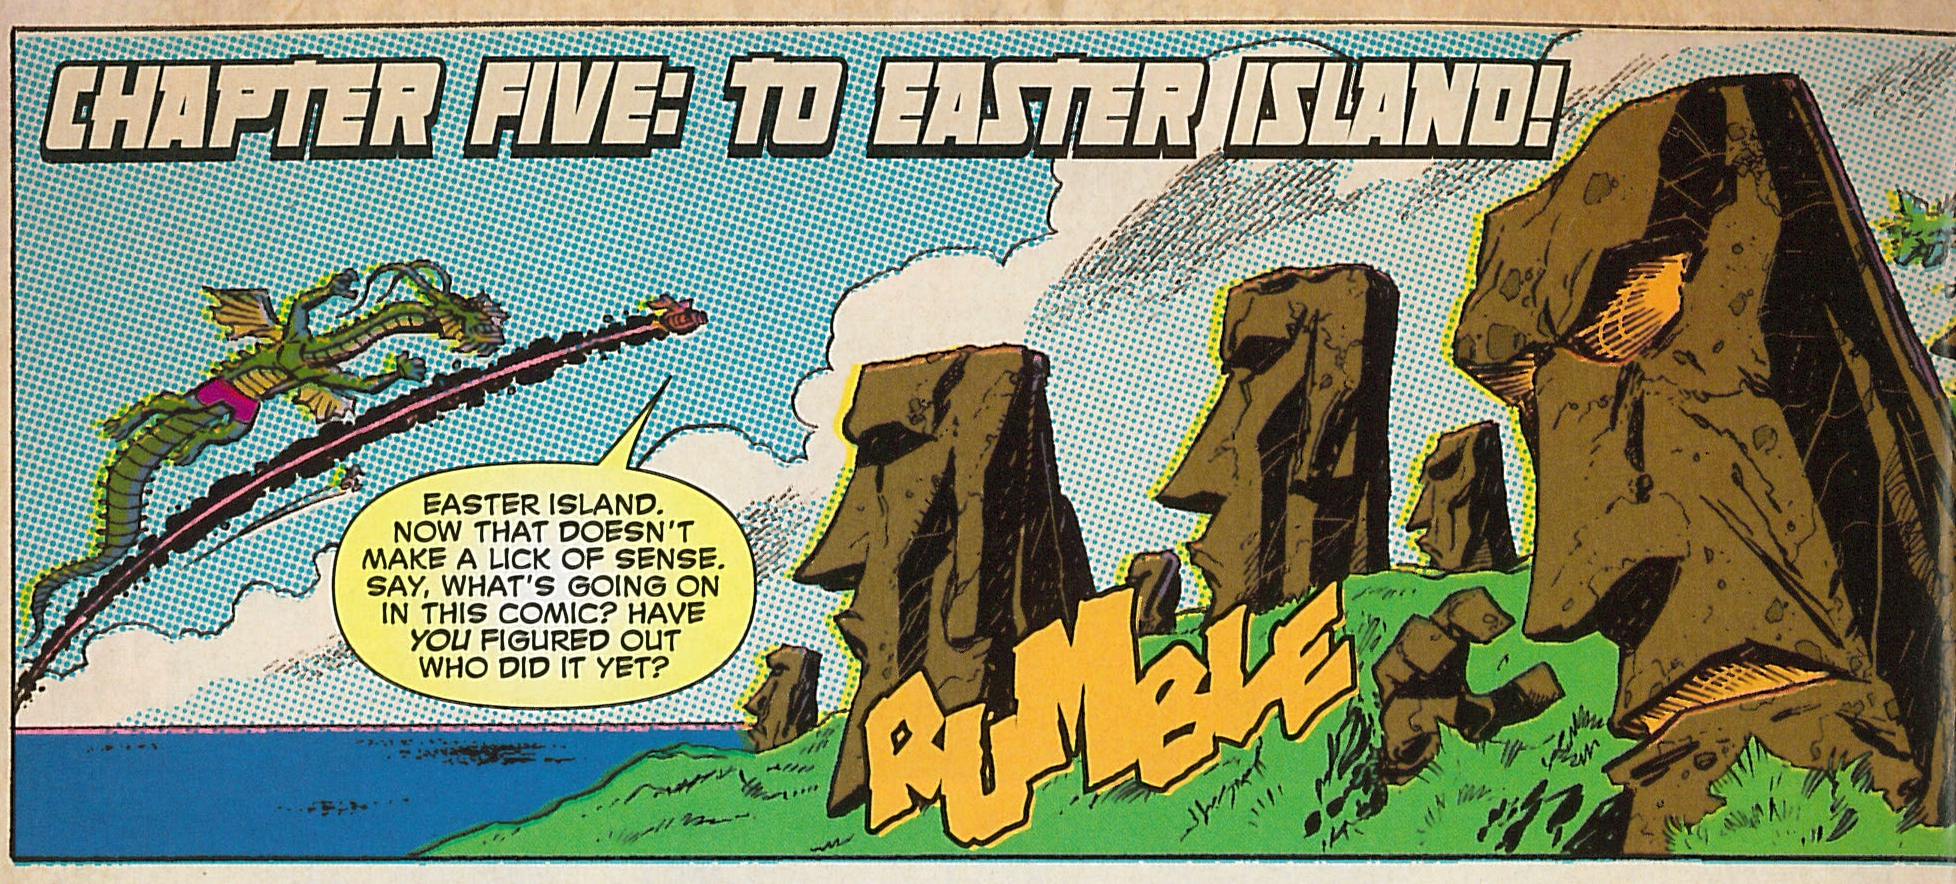 Easter Island A Journey Through Comics The Weekend Roady